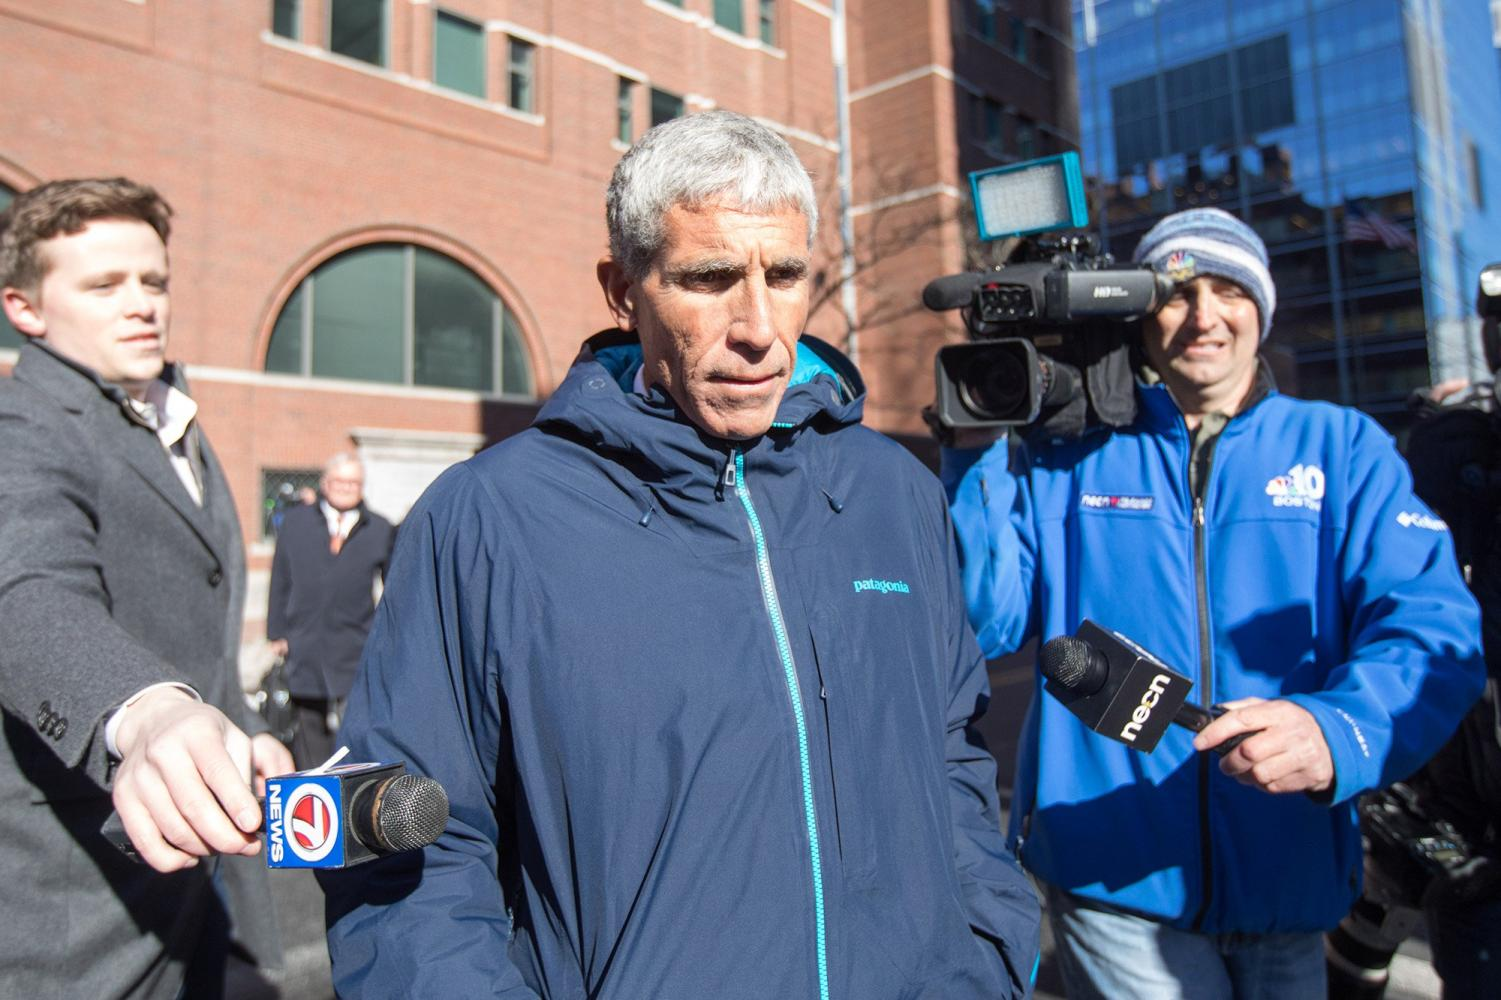 William Singer has admitted to being the ringleader of the admissions scandal.